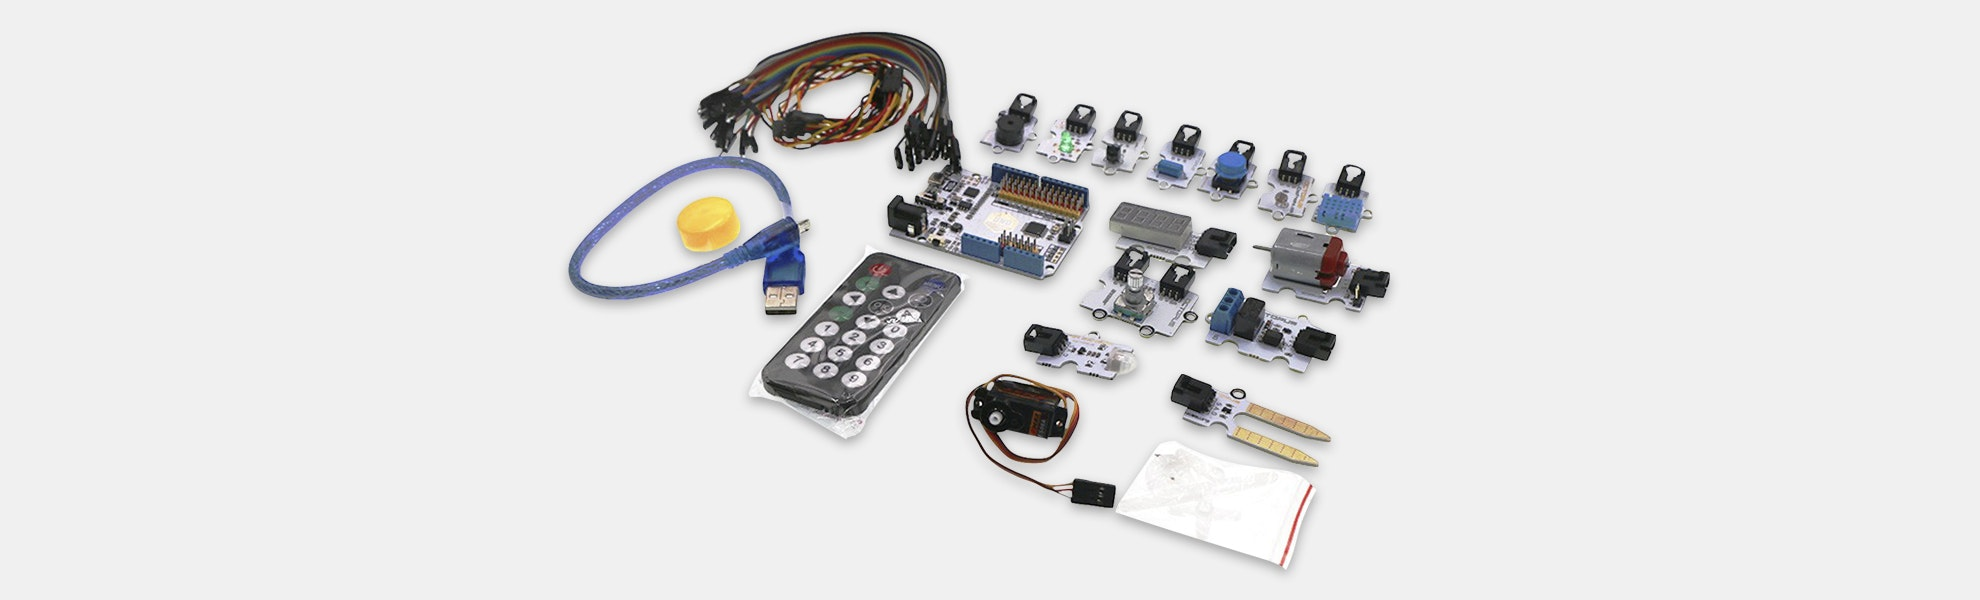 Elecfreaks Arduino Absolute Beginner Starter Kit